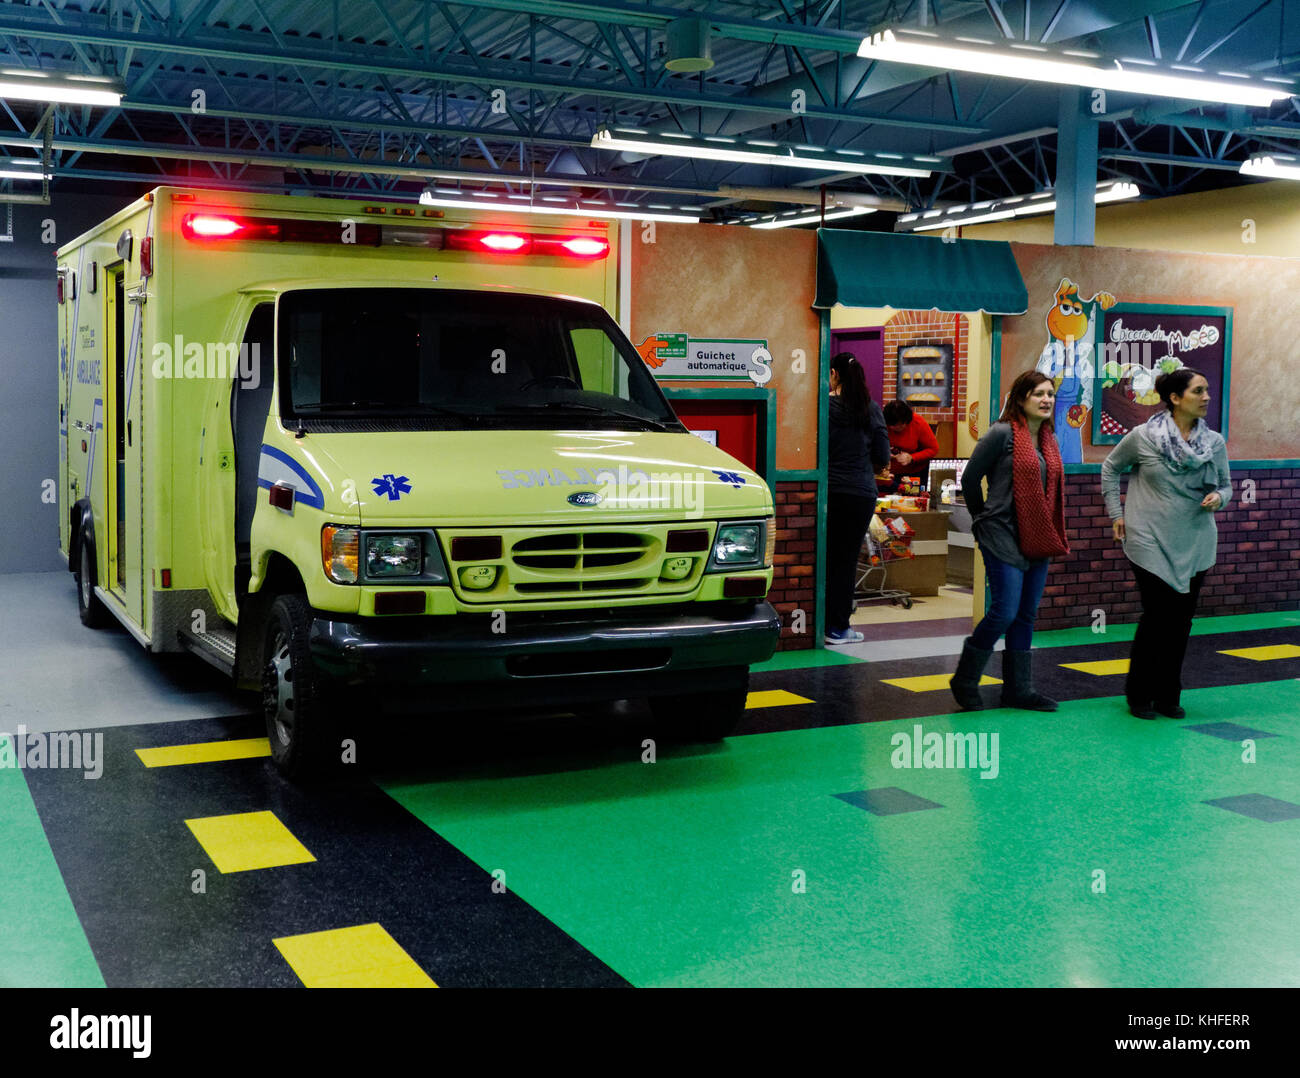 Anambulance in the Musee D'Enfance indoor themed play cenrtre in Laval, Quebec - Stock Image